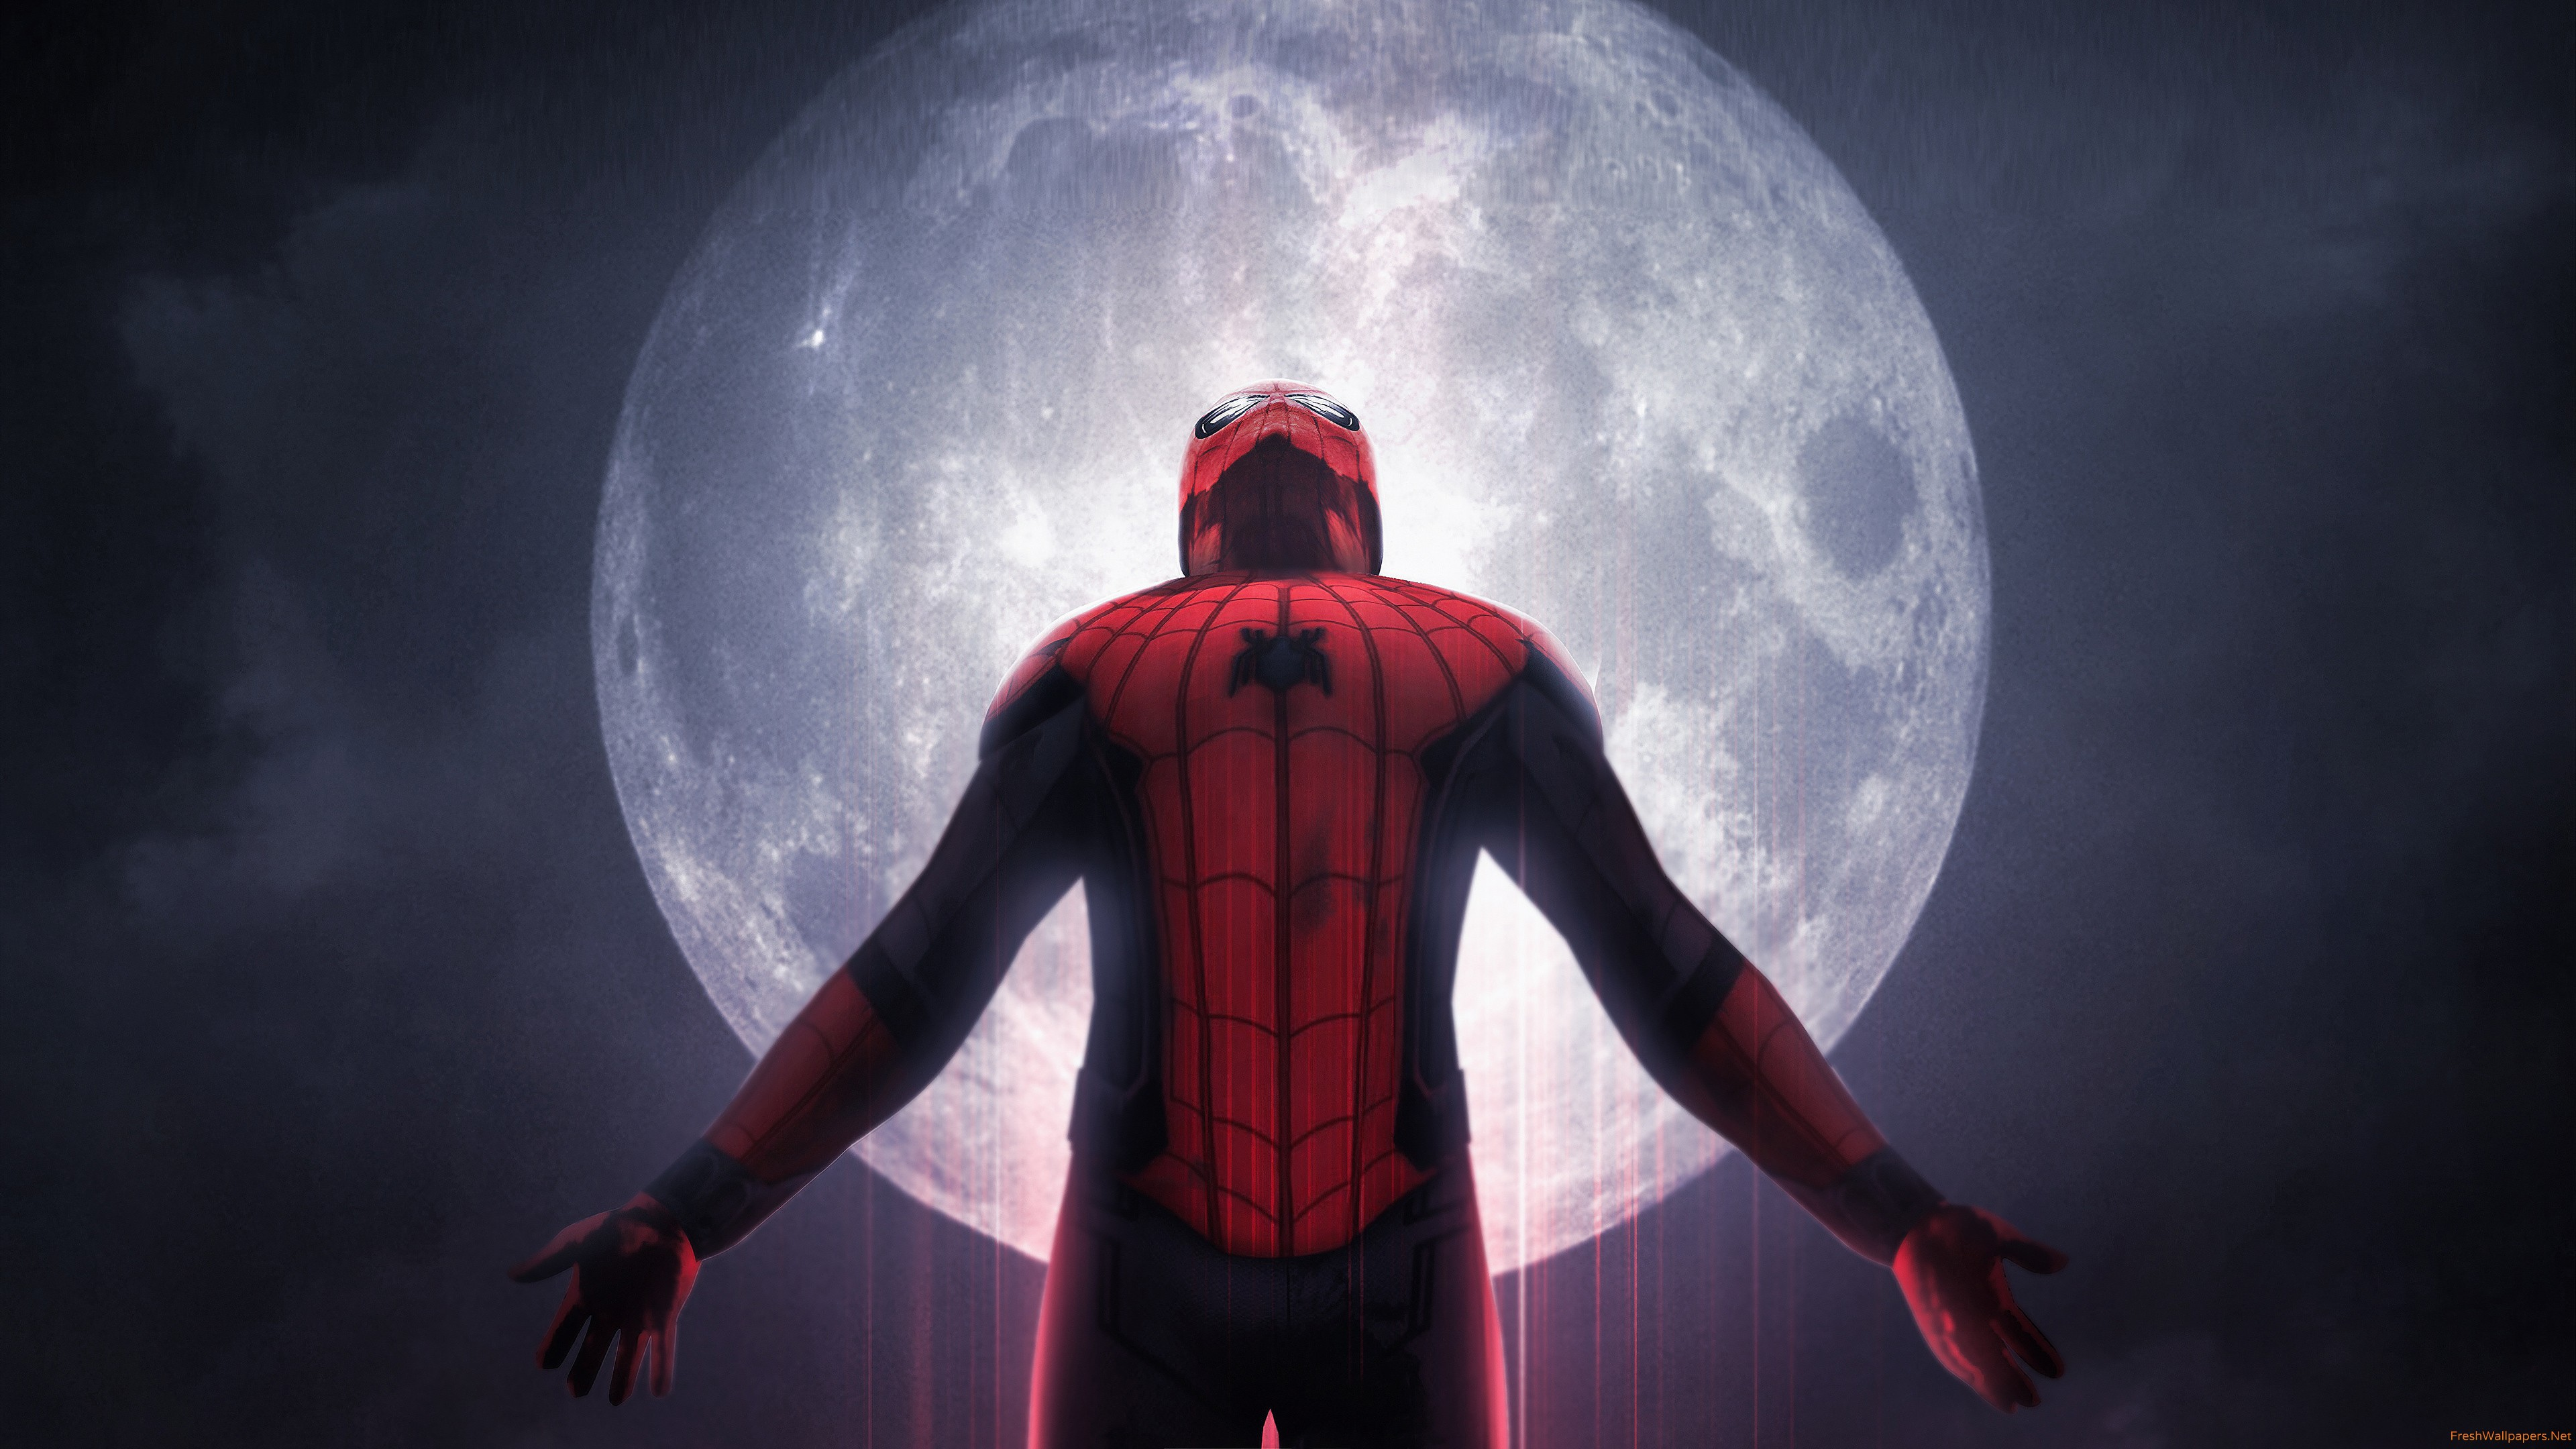 Spider Man Wallpaper 4k Posted By John Simpson